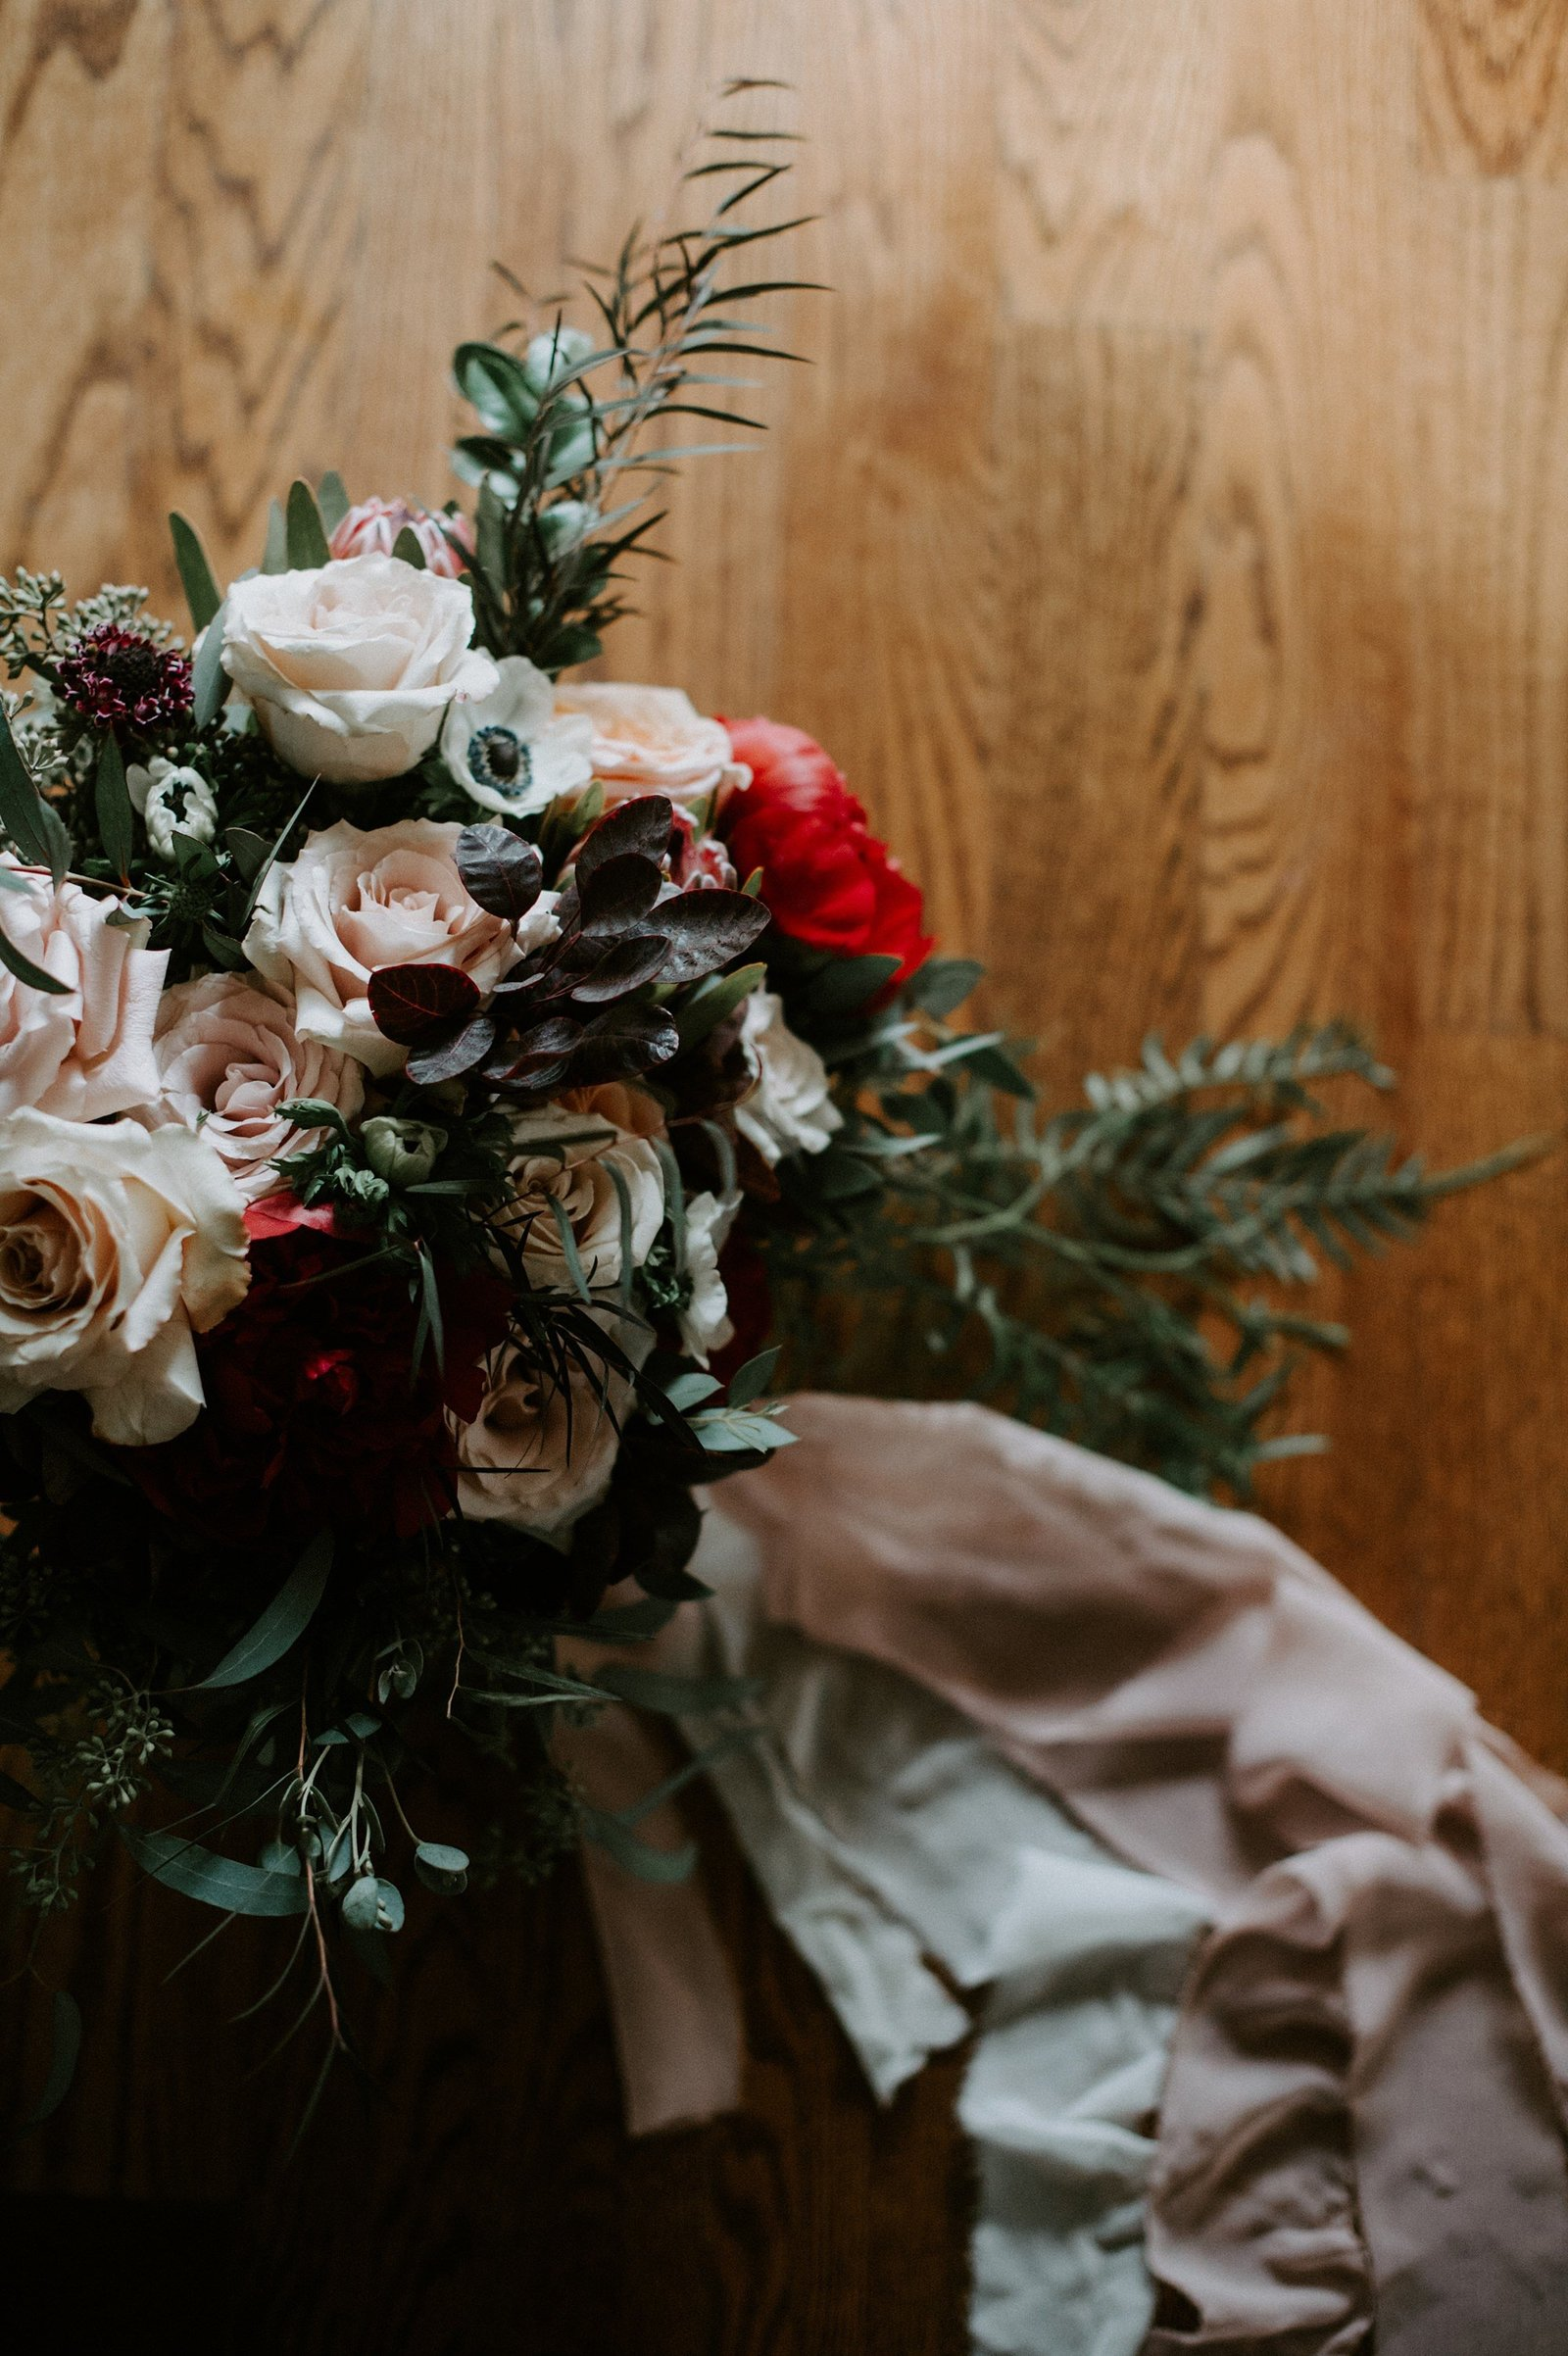 Rustic & Romantic fall wedding bouquet in pink, eggplant and green